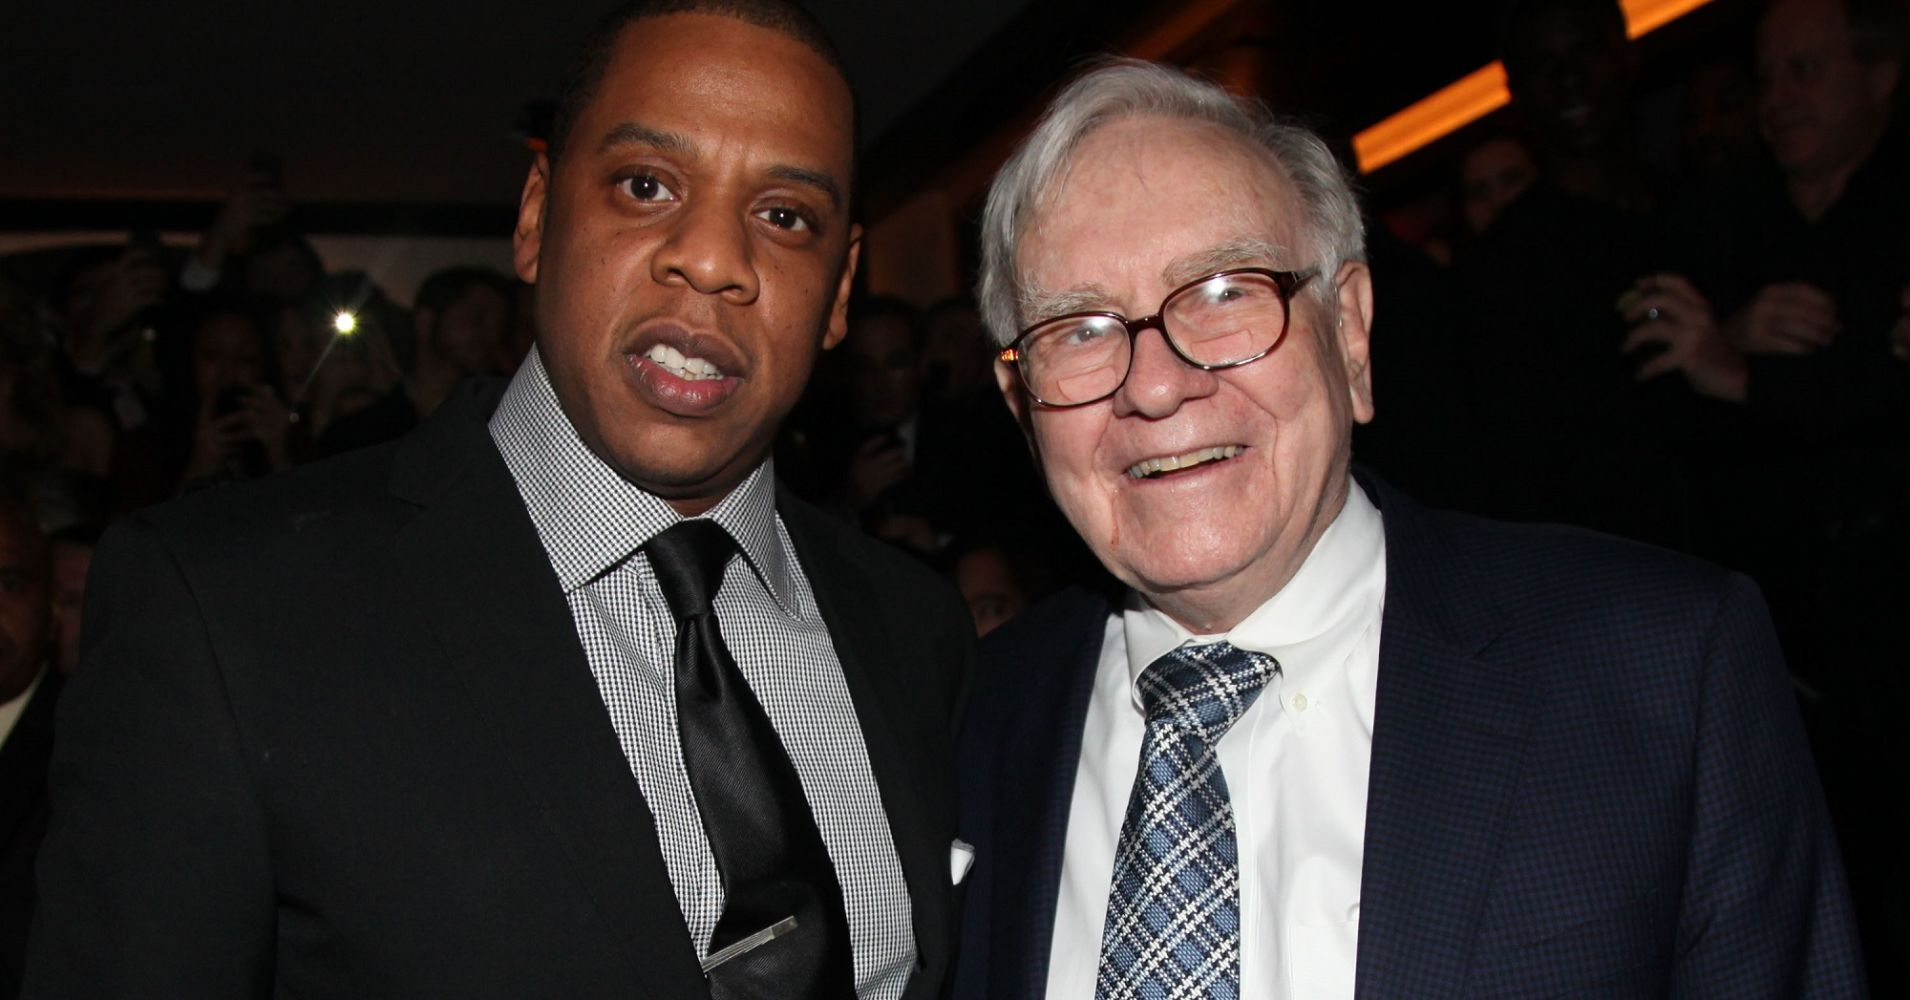 Long-term success comes from Long-term investing and taking a Long-term view of your business. Just look at Warren Buffet and Jay-Z.